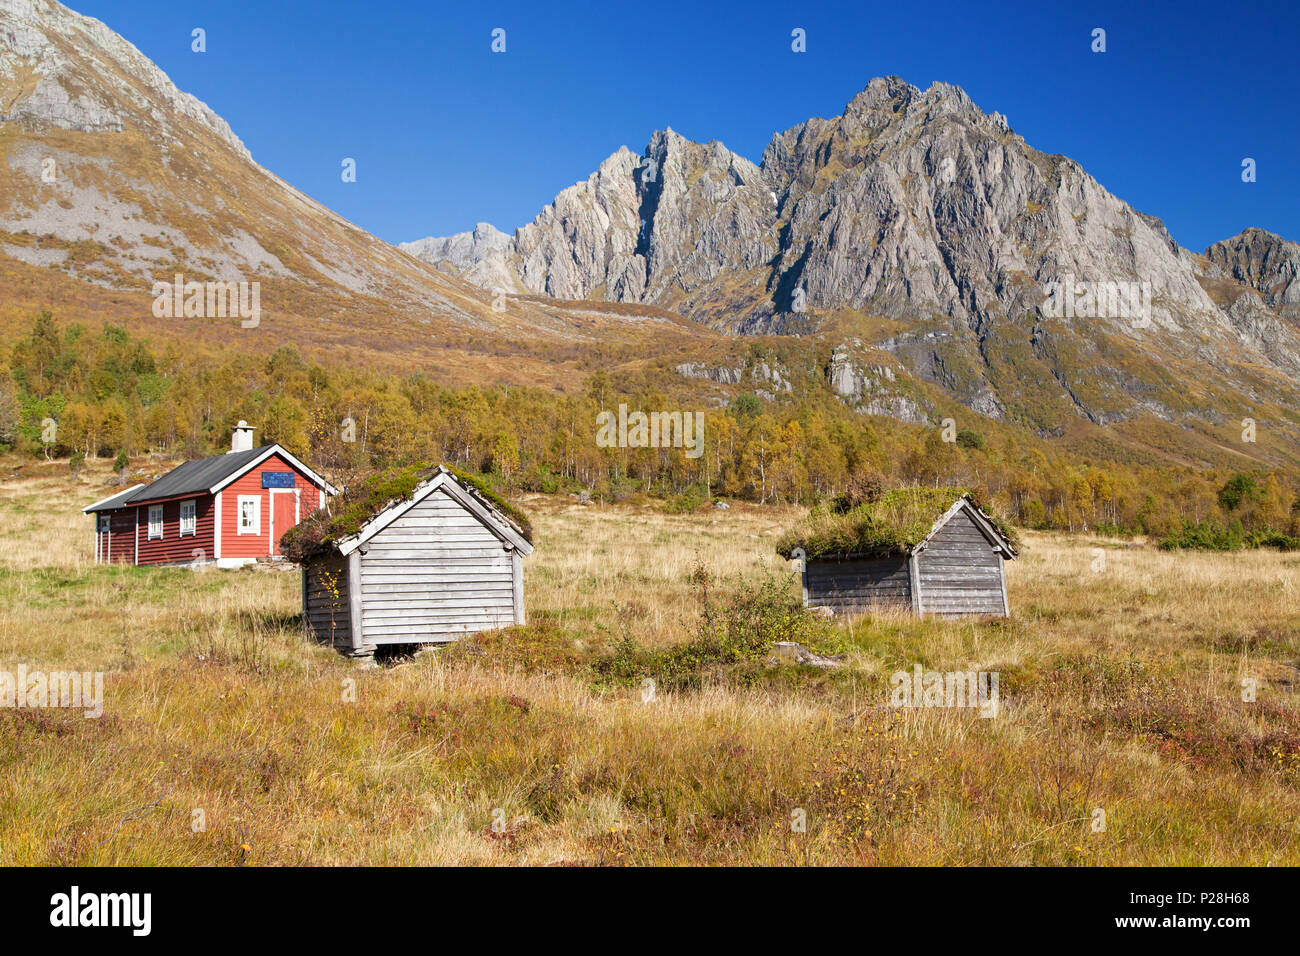 Standaldalen Valley in the Sunnmore Alps, More og Romsdal, Norway. - Stock Image